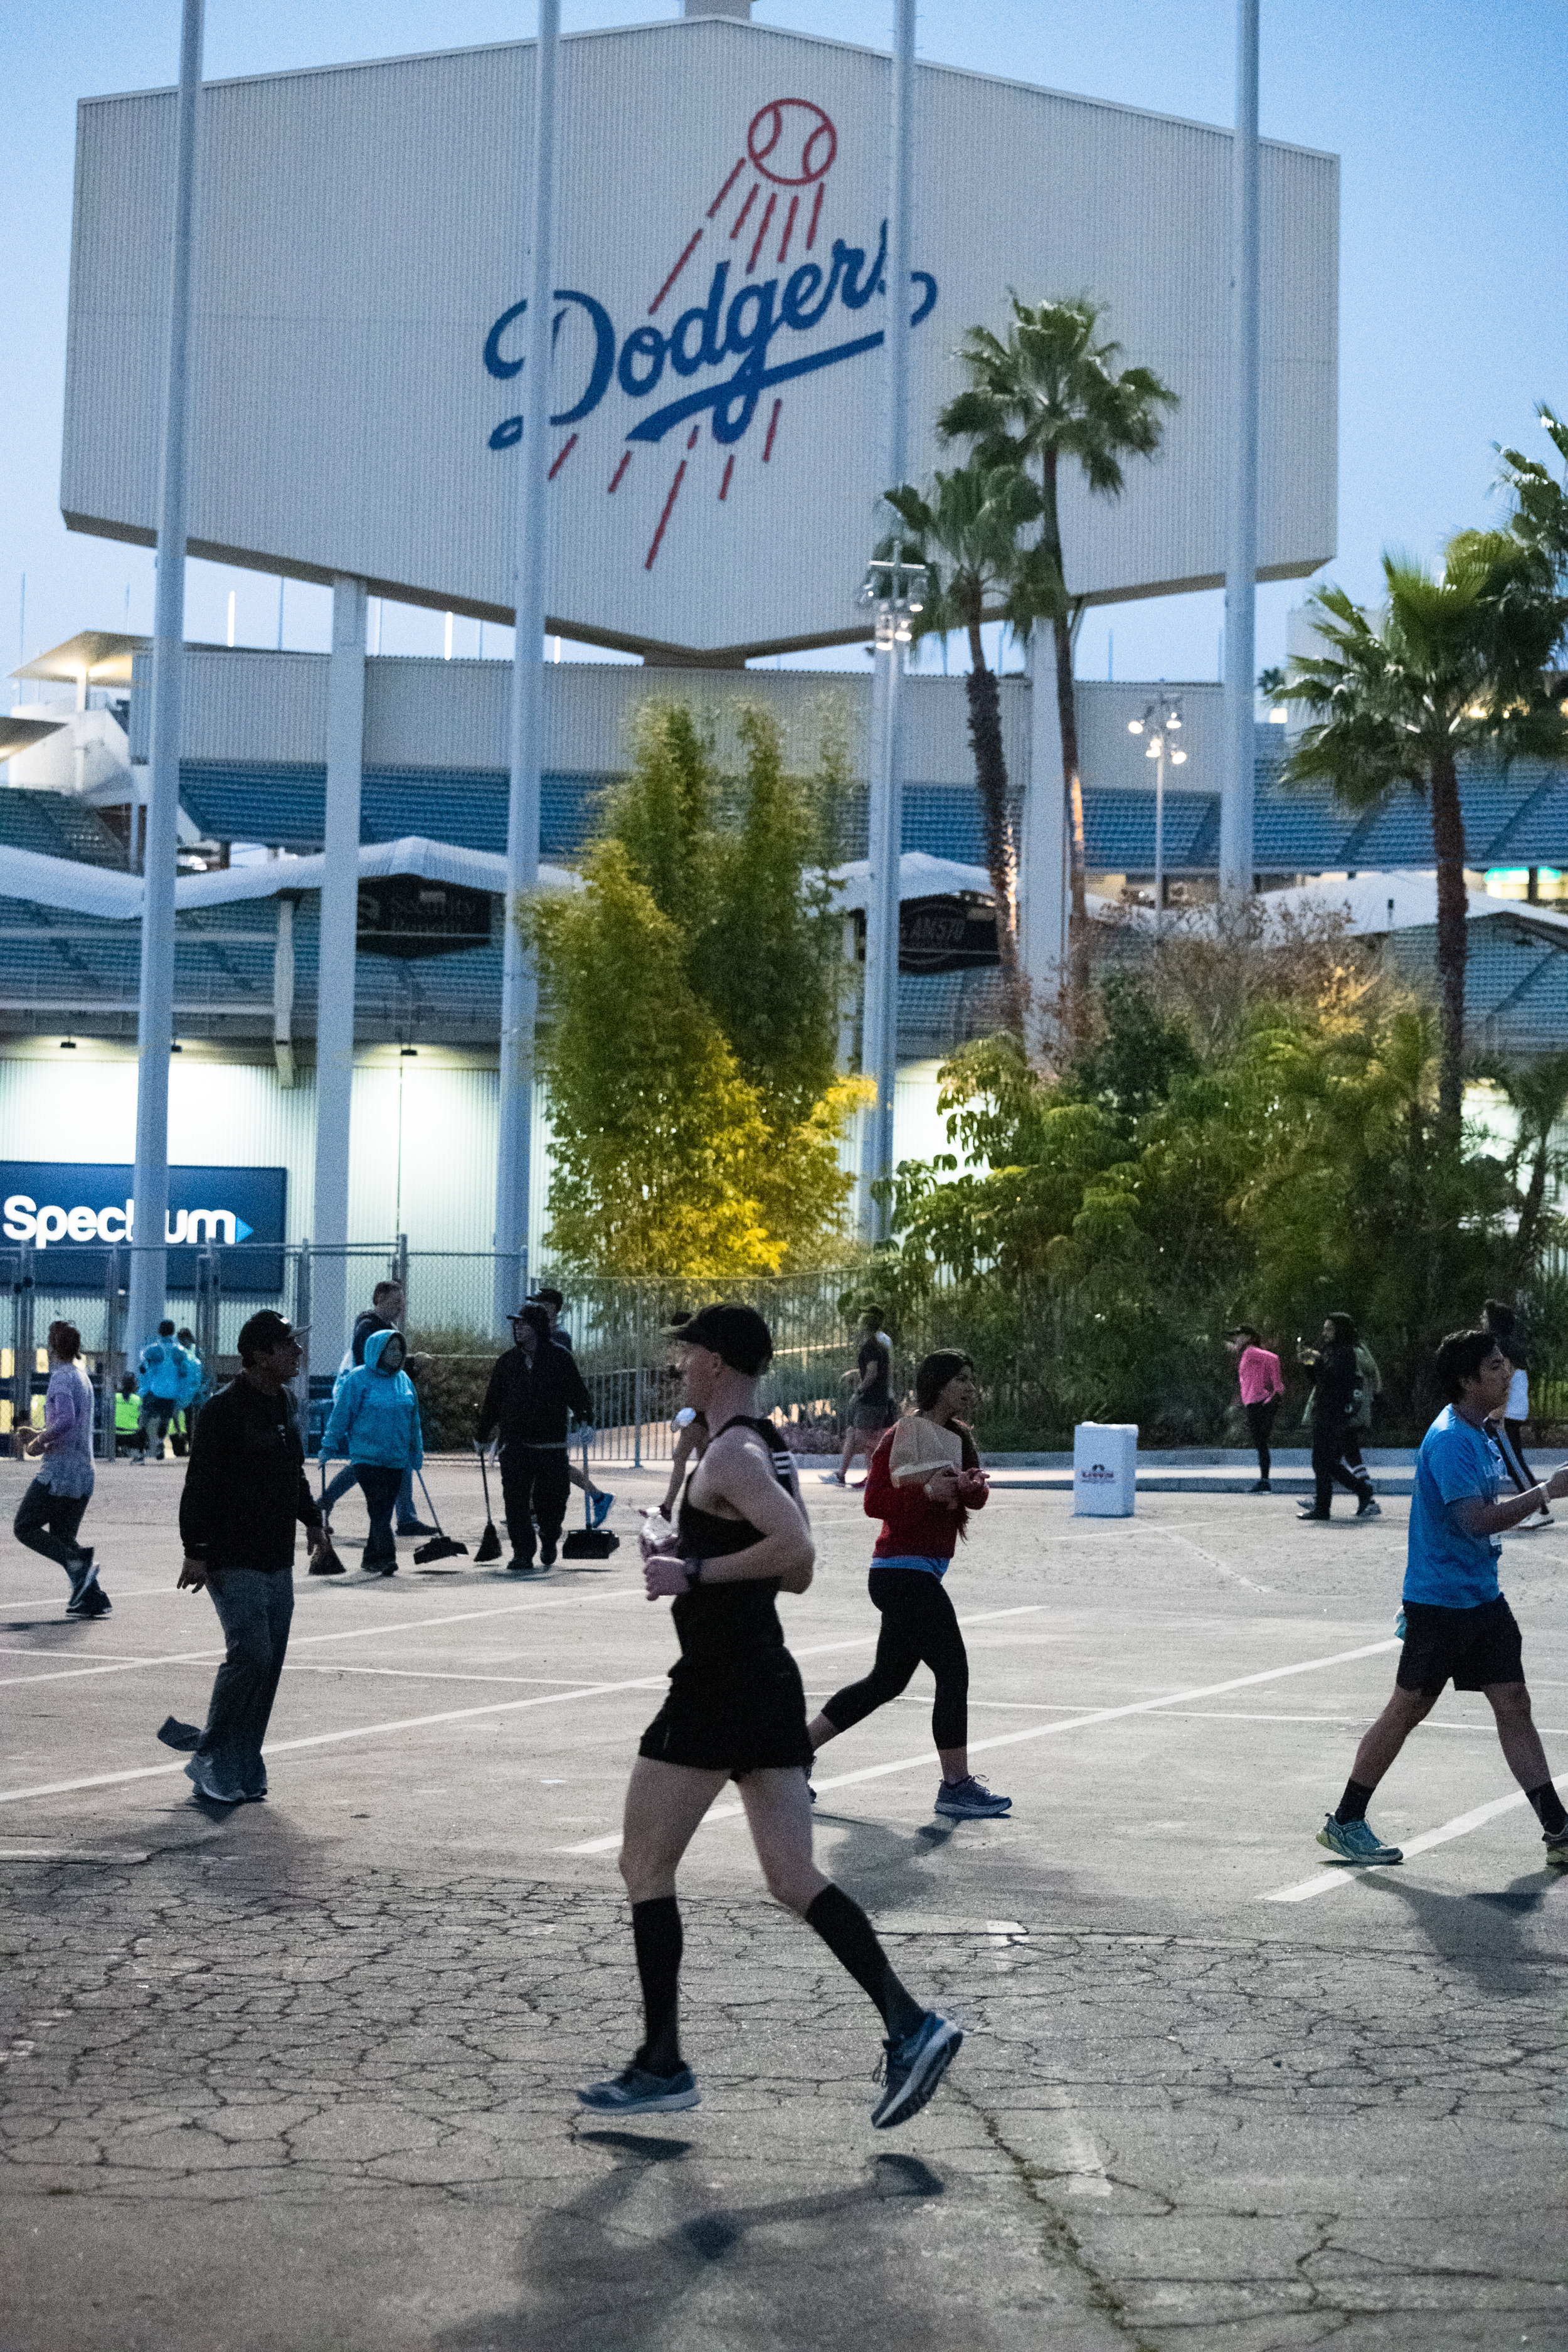 Runners warm-up in the parking lot of Dodger Stadium at the 34th Los Angeles Marathon, Sunday morning, March 24, 2019, in Los Angeles, Calif. (Nicole Haun)